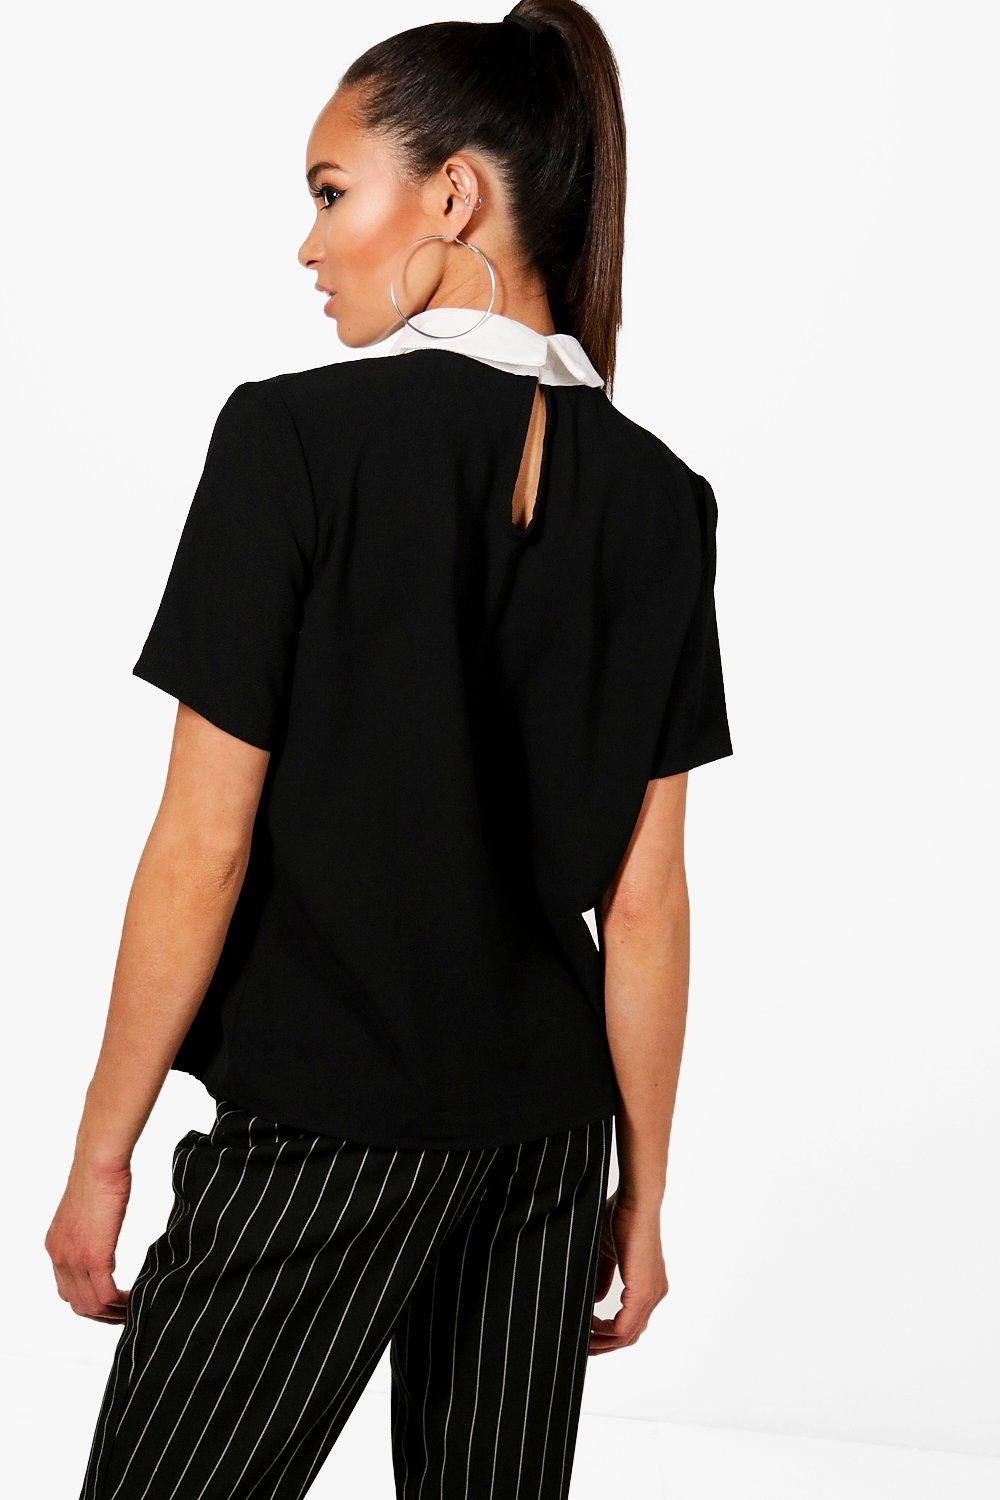 en negro con Top cuello contraste qw6BY7